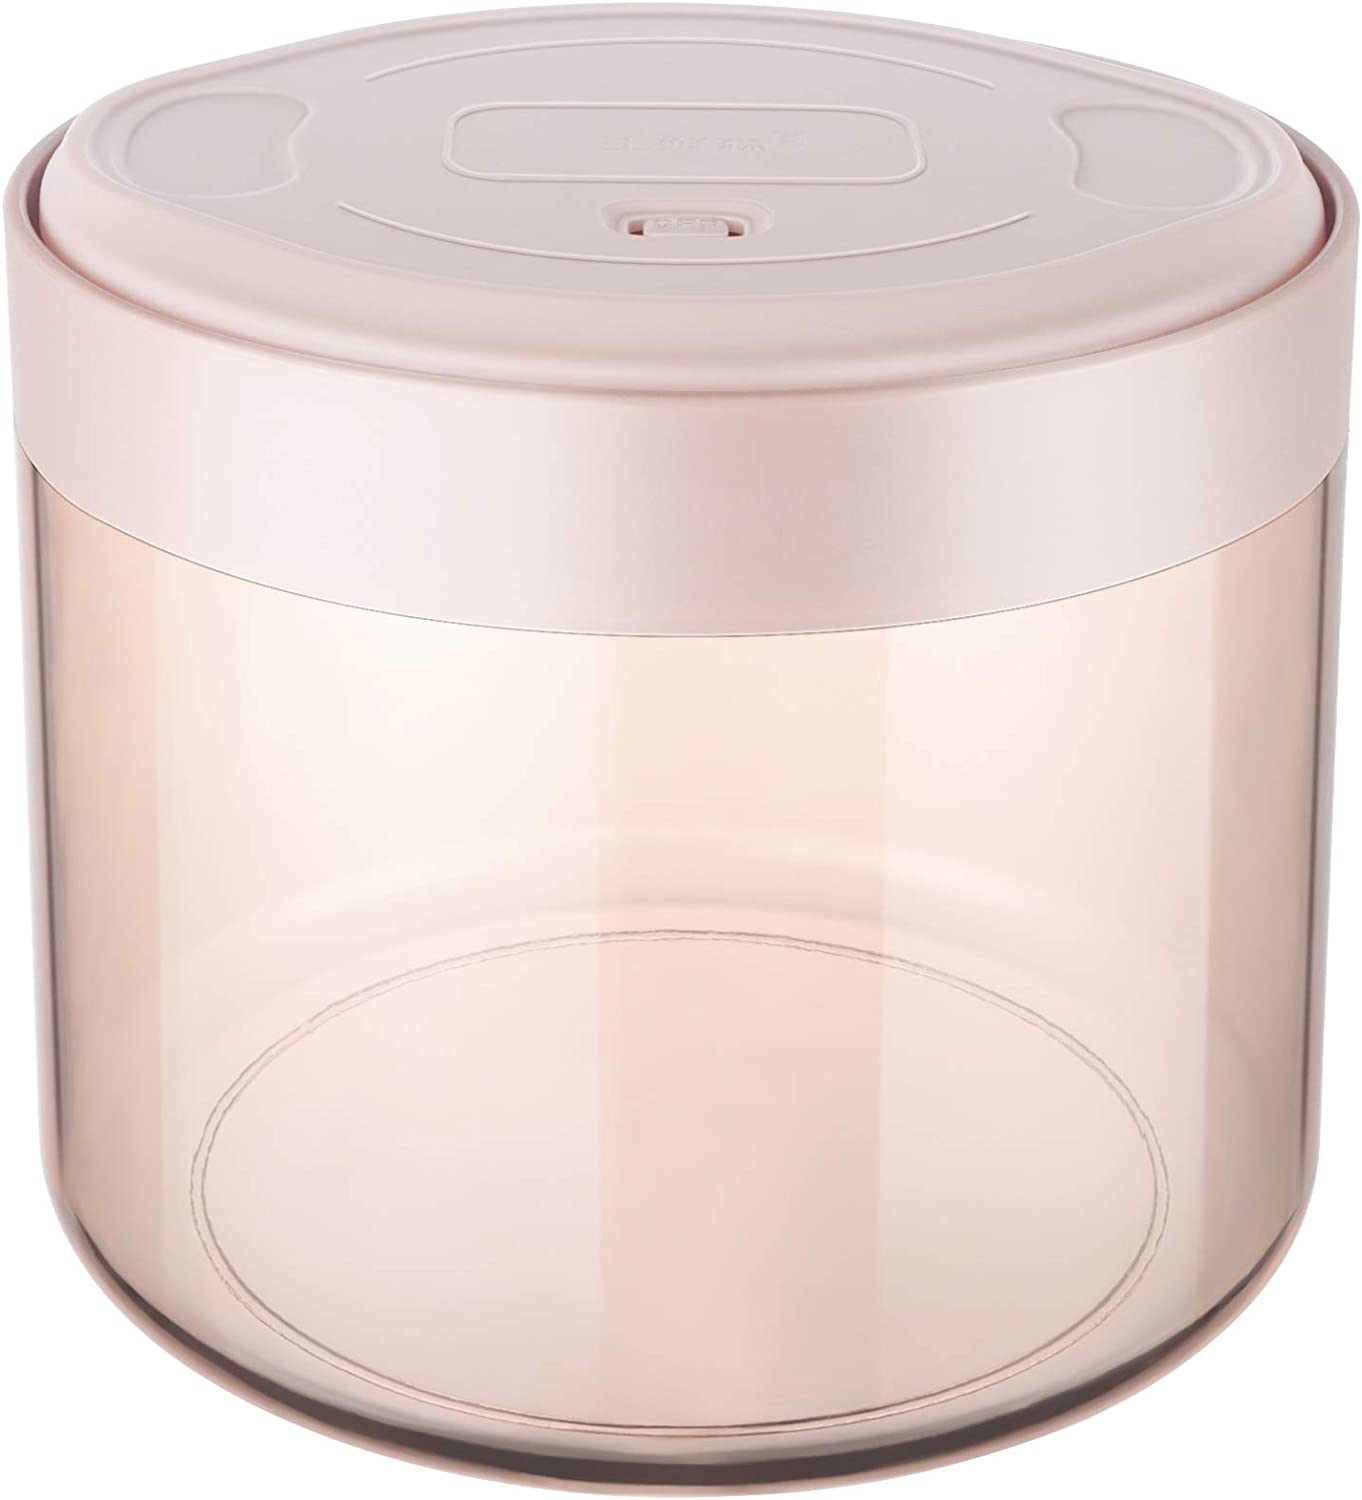 Food Storage Containers for Coffee & Food, Harebe 50 Ounce Vacuum Storage Box, Integrated Vacuum Pump - No Need for Additional Air Pump, Airtight Seal - Transparent Light Brown